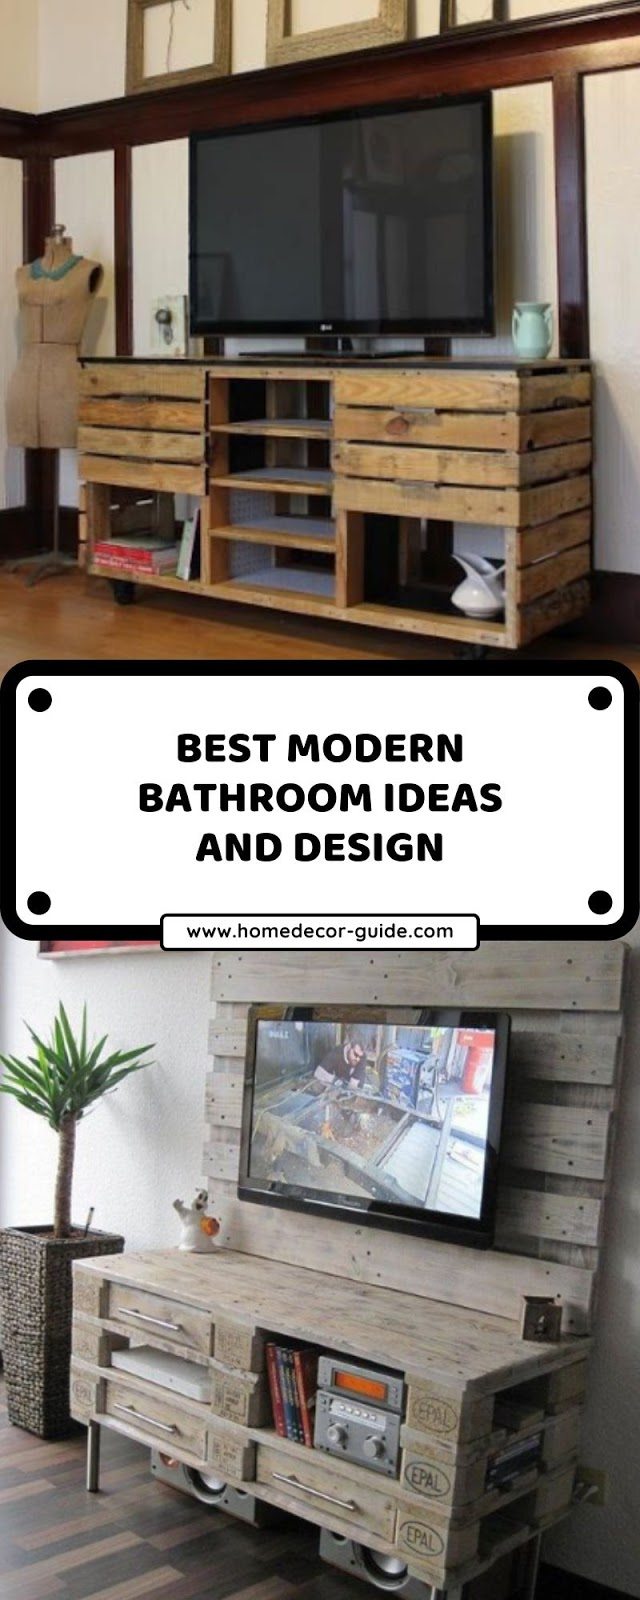 CREATIVE IDEAS WITH PALLET RACK